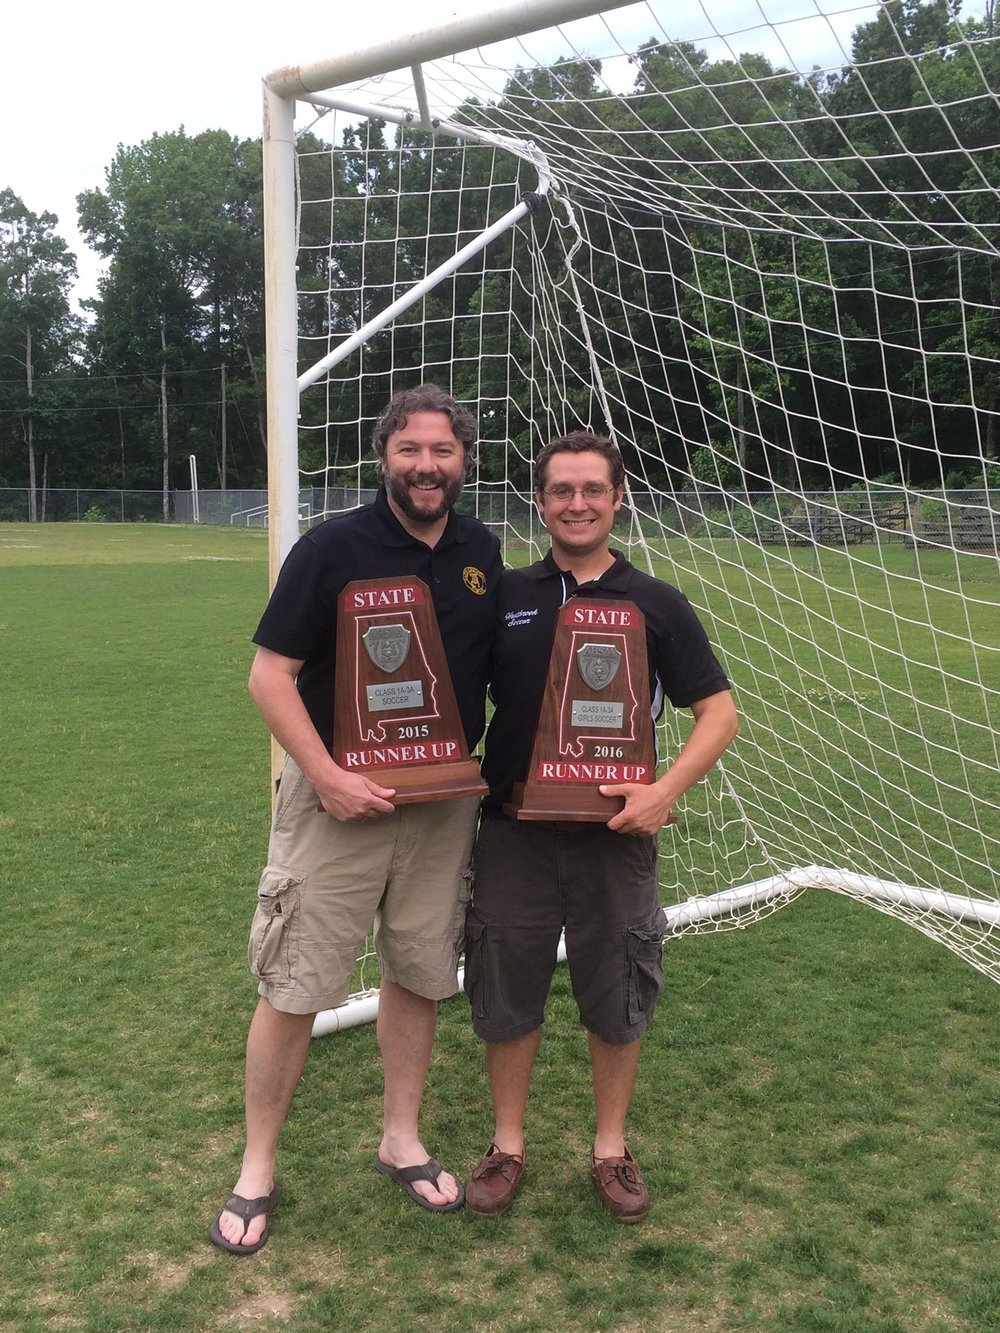 My former youth pastor, soccer coach, and accountability partner, Erik.